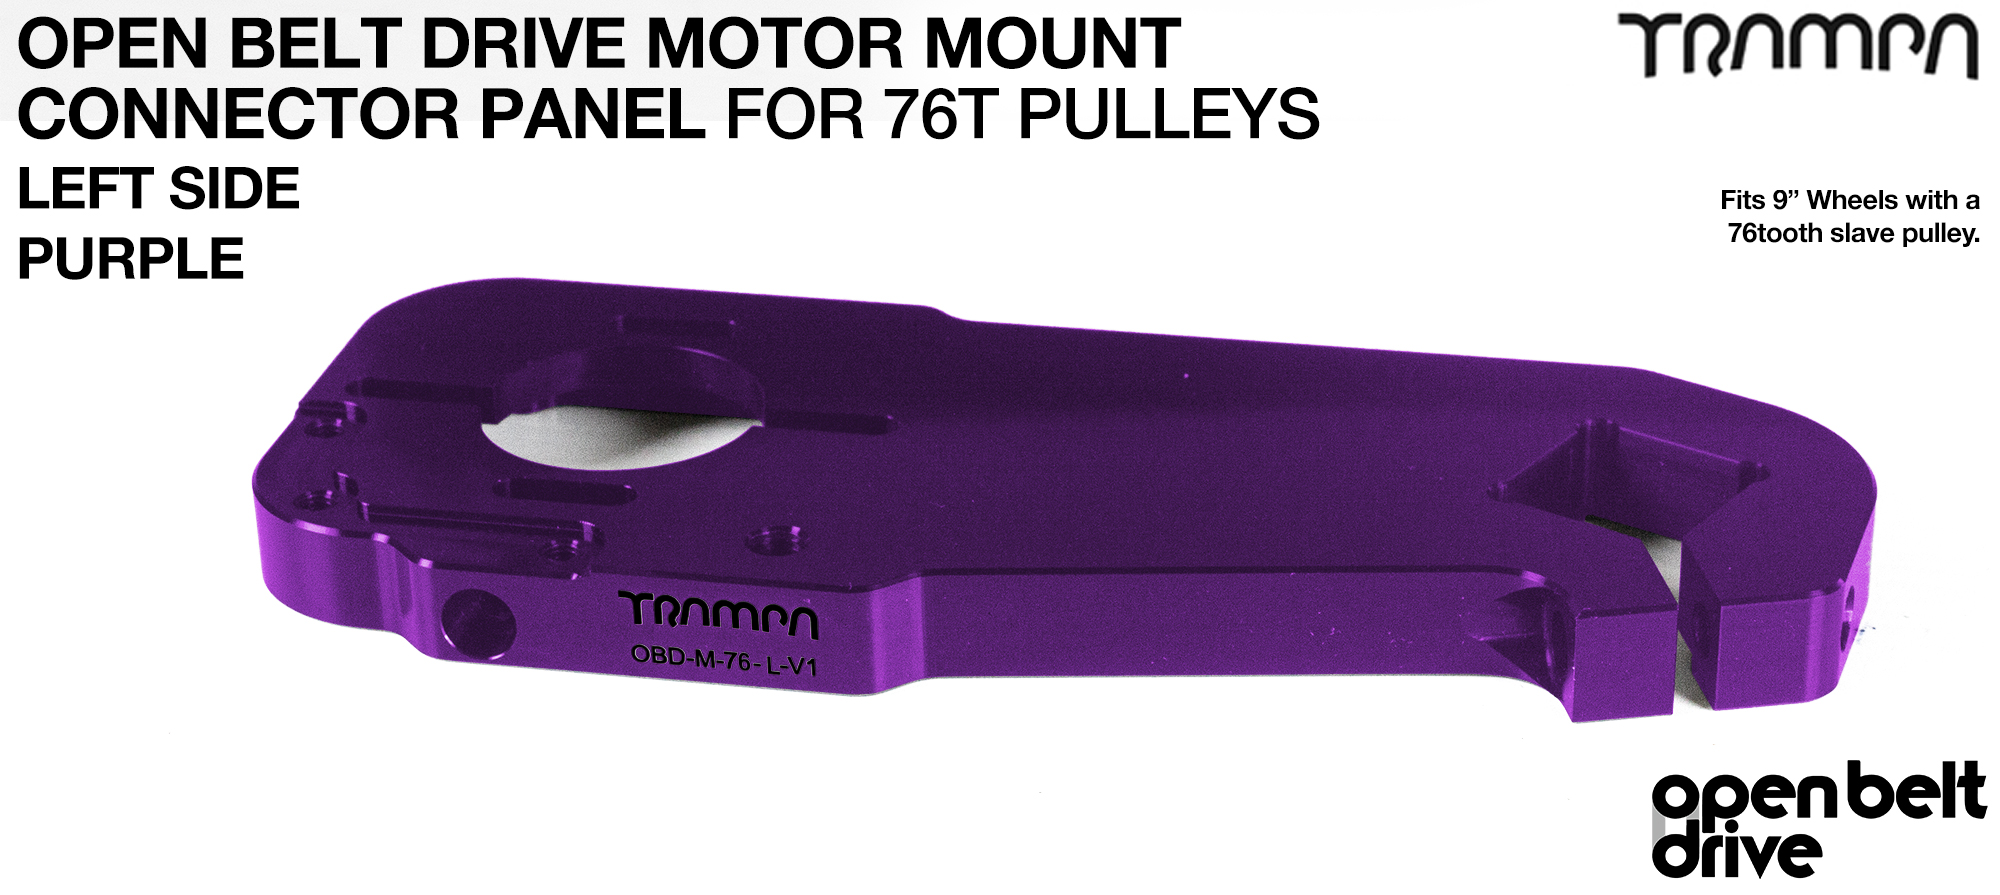 OBD Motor Mount Connector Panel for 76 tooth pulleys - REGULAR - PURPLE